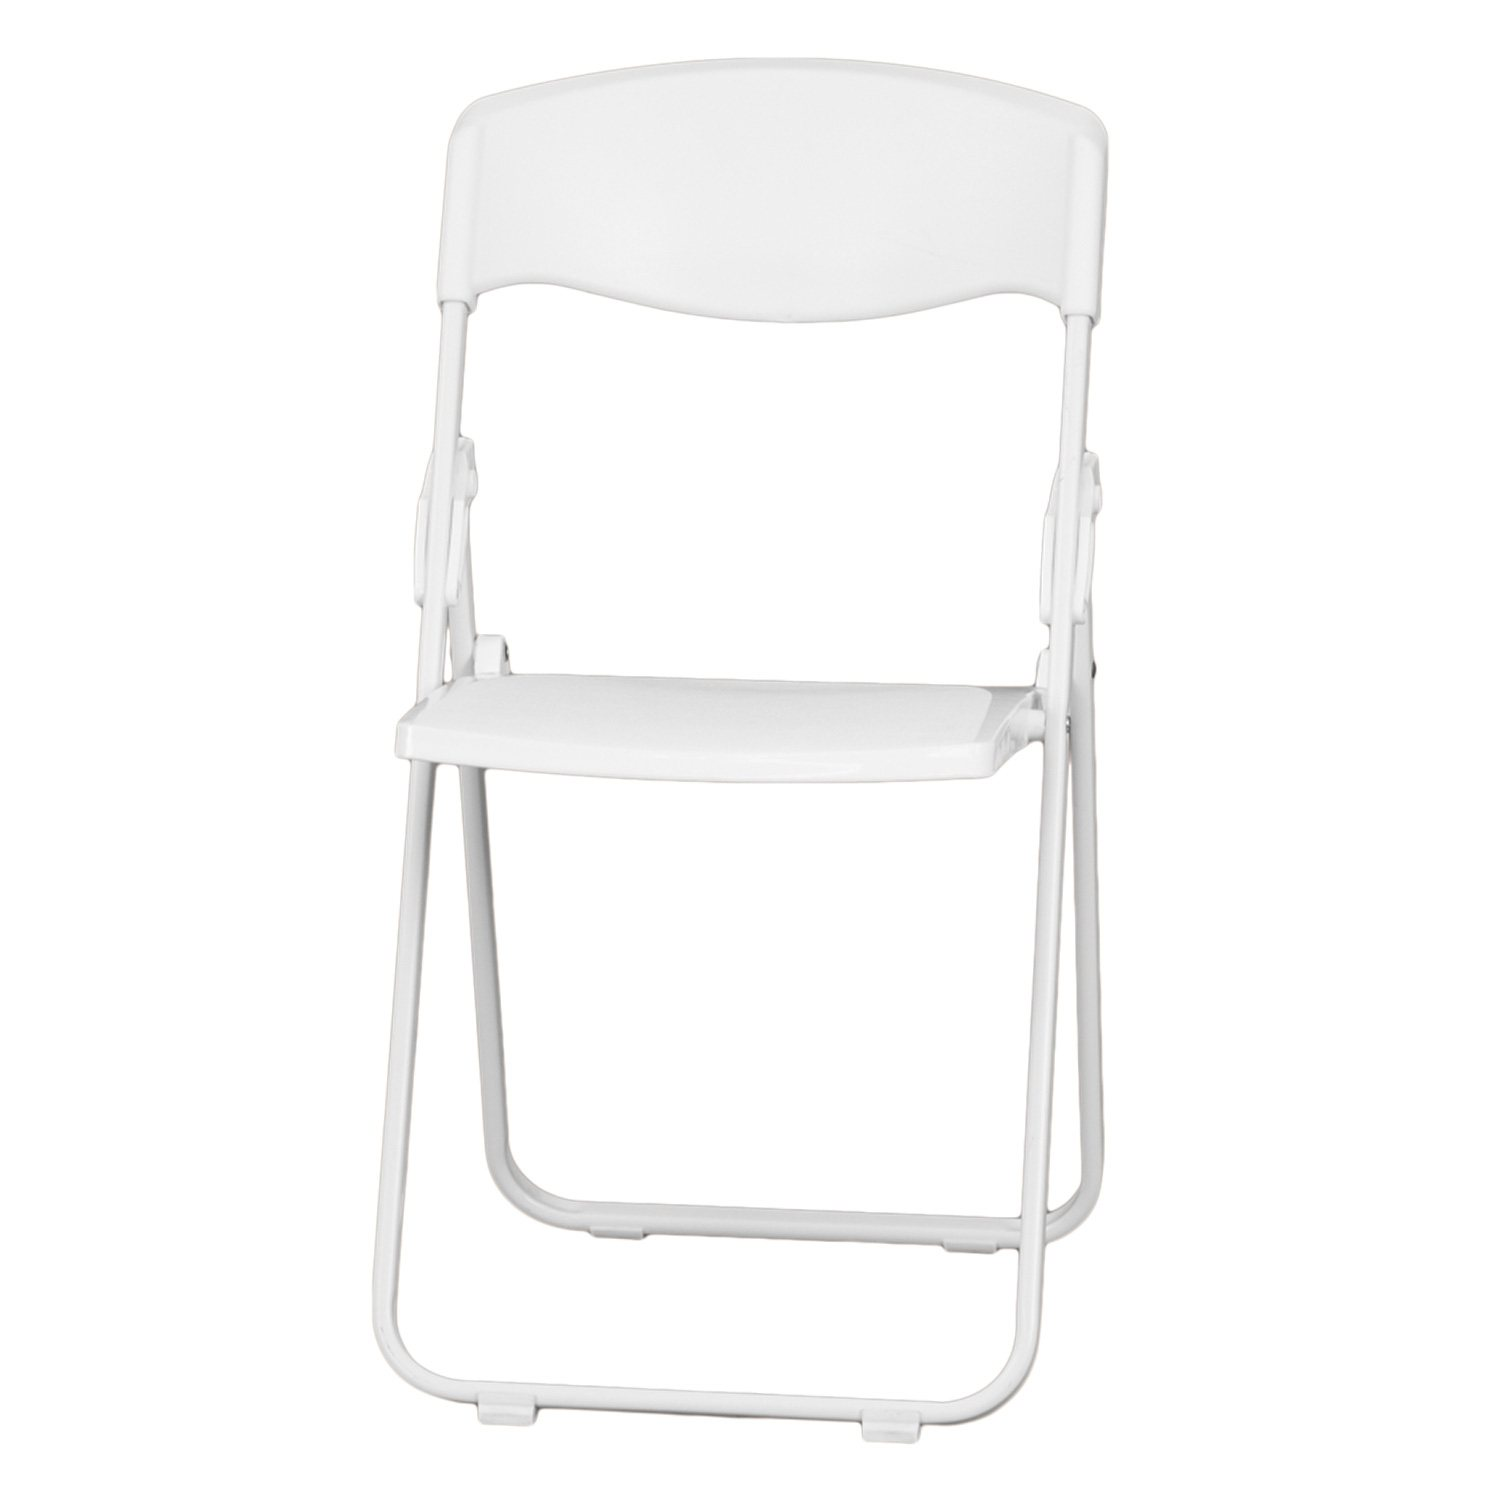 Hercules Heavy Duty Plastic Folding Chair White Sam s Club